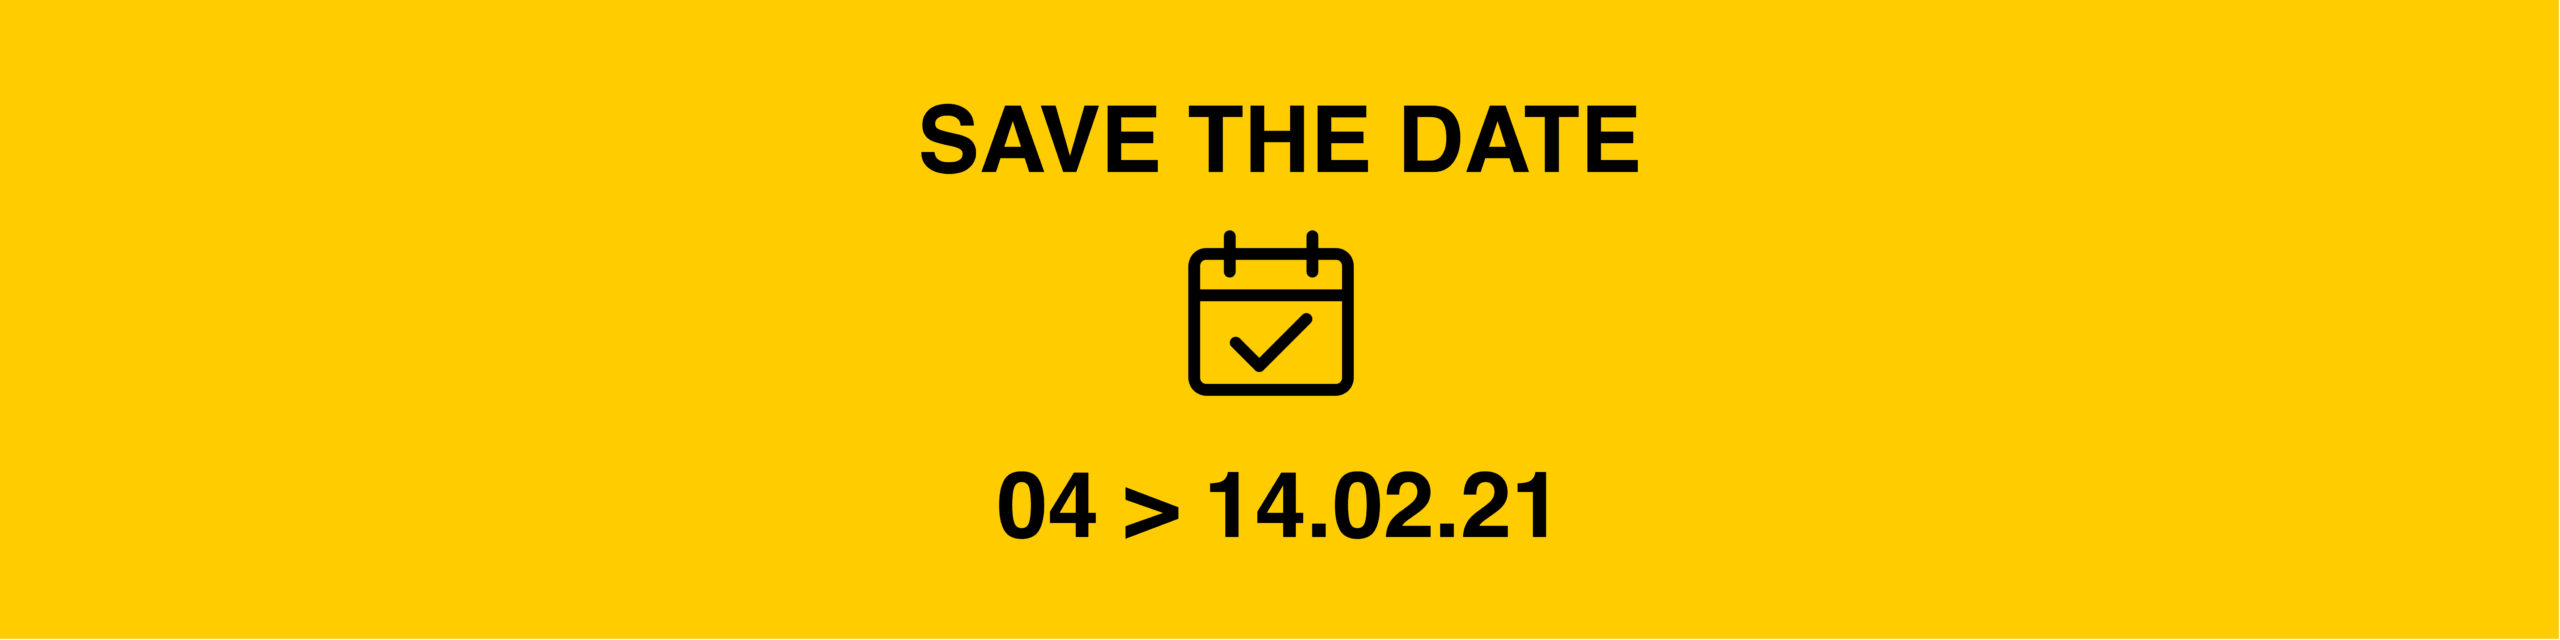 News Site Save The Date